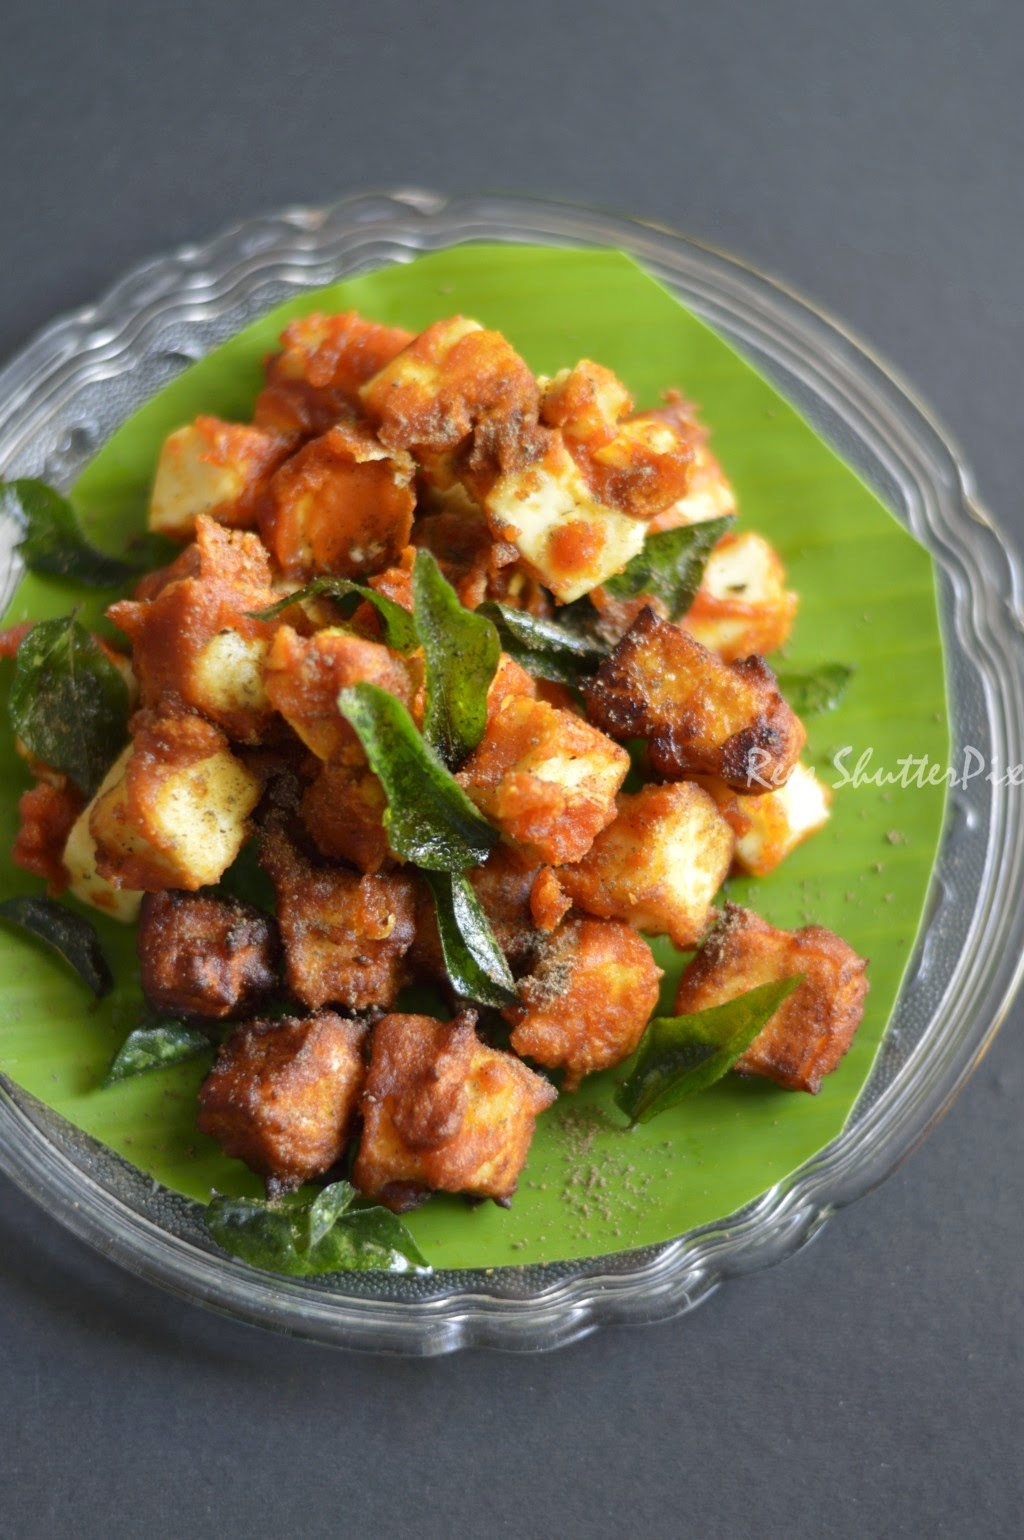 starters recipe,appetizers recipe, easy paneer starters, paneer recipes, veg starter recipe, recipe for paneer